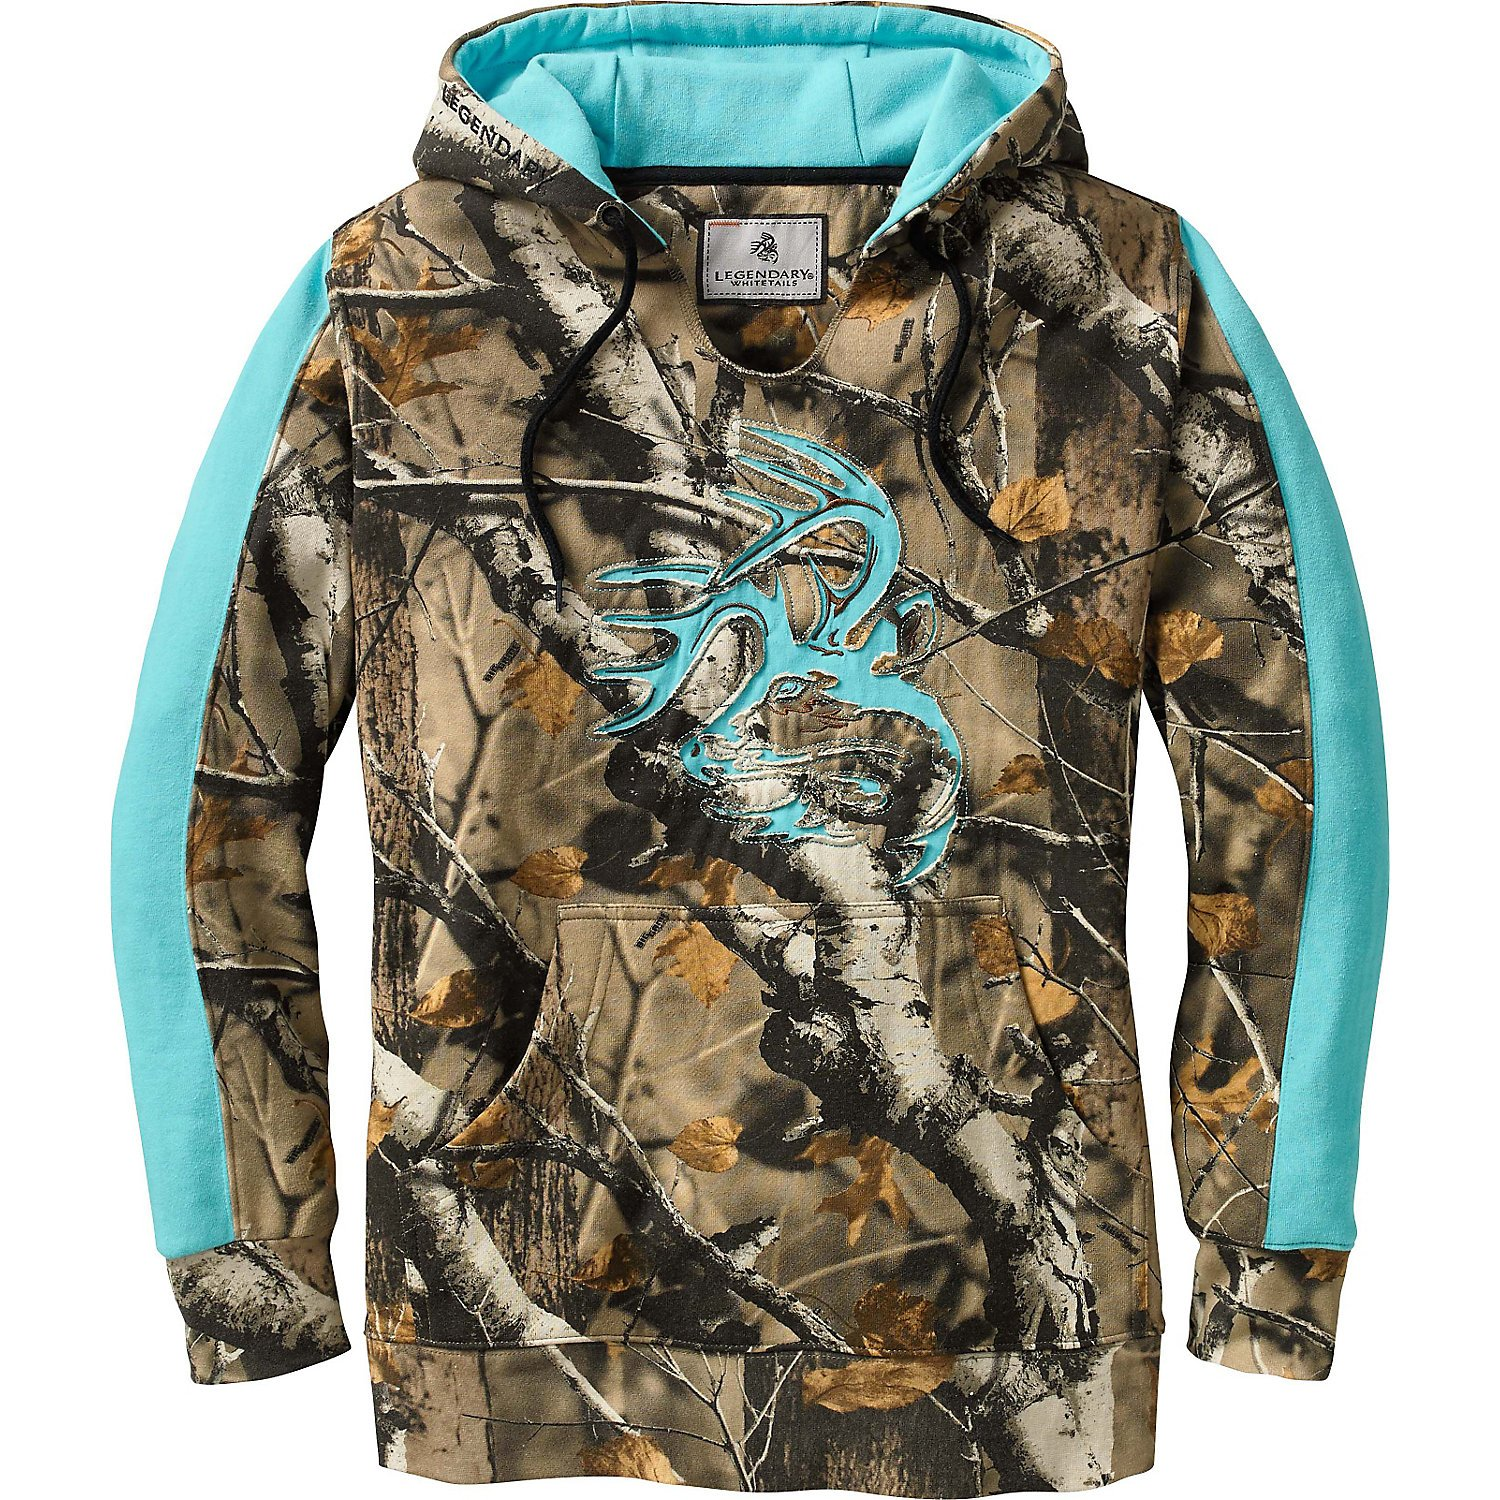 Legendary Whitetails Ladies Outfitter Hoodie Big Game Field Camo Small by Legendary Whitetails (Image #1)